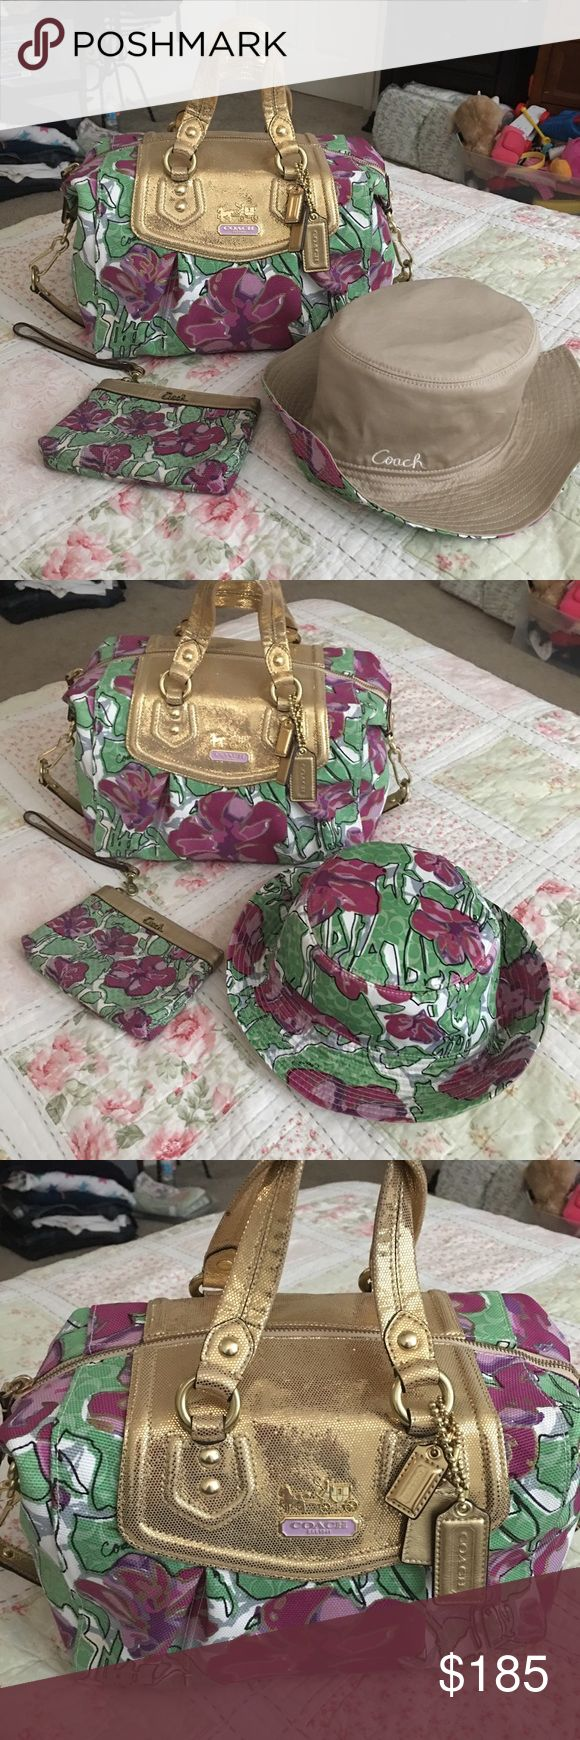 Coach Sabrina floral satchel set Sell as a lot 3 pieces of coach Sabrina floral print matching purse sun hat and wristlet will add for free Coach Bags Satchels